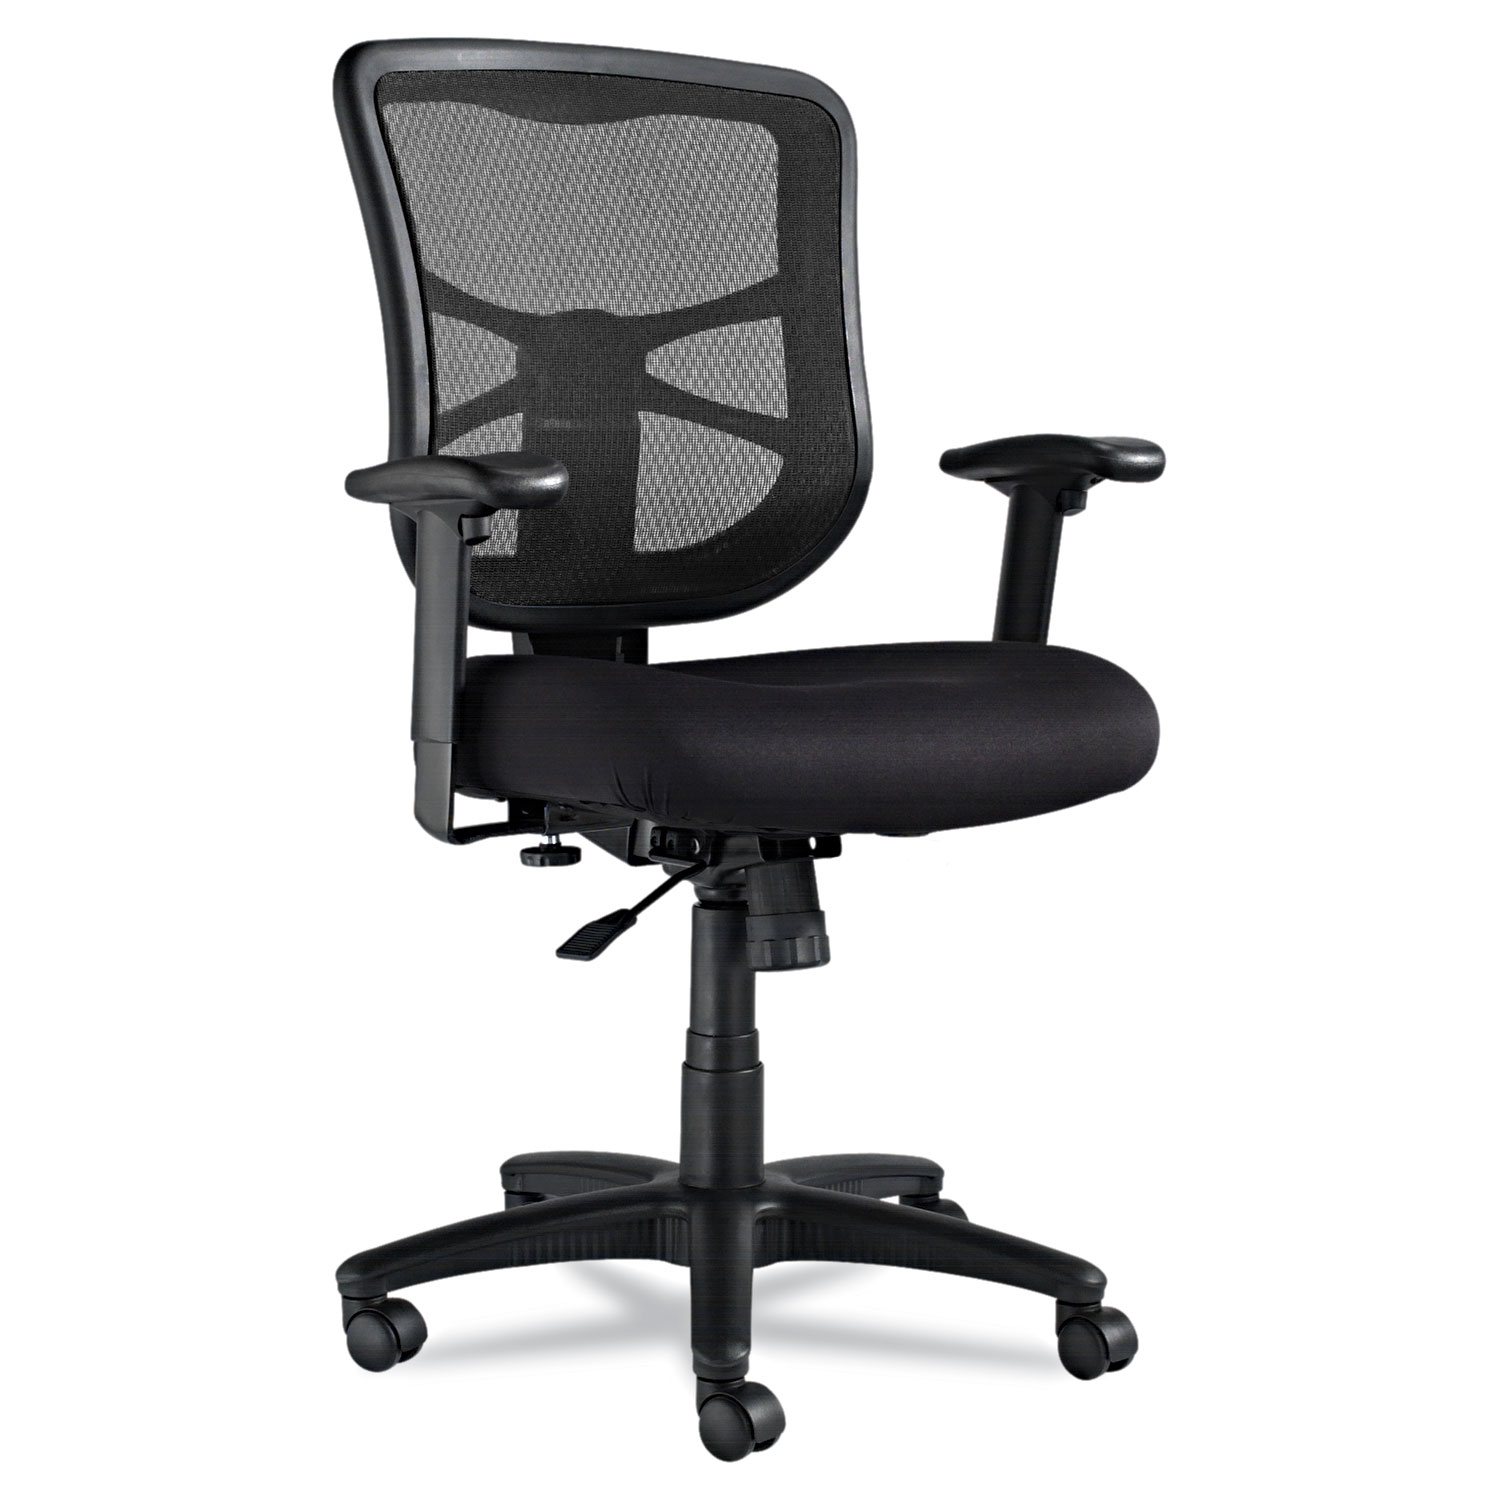 Alera Elusion Series Mesh Mid Back Swivel Tilt Chair Supports Up To 275 Lbs Black Seat Black Back Black Base